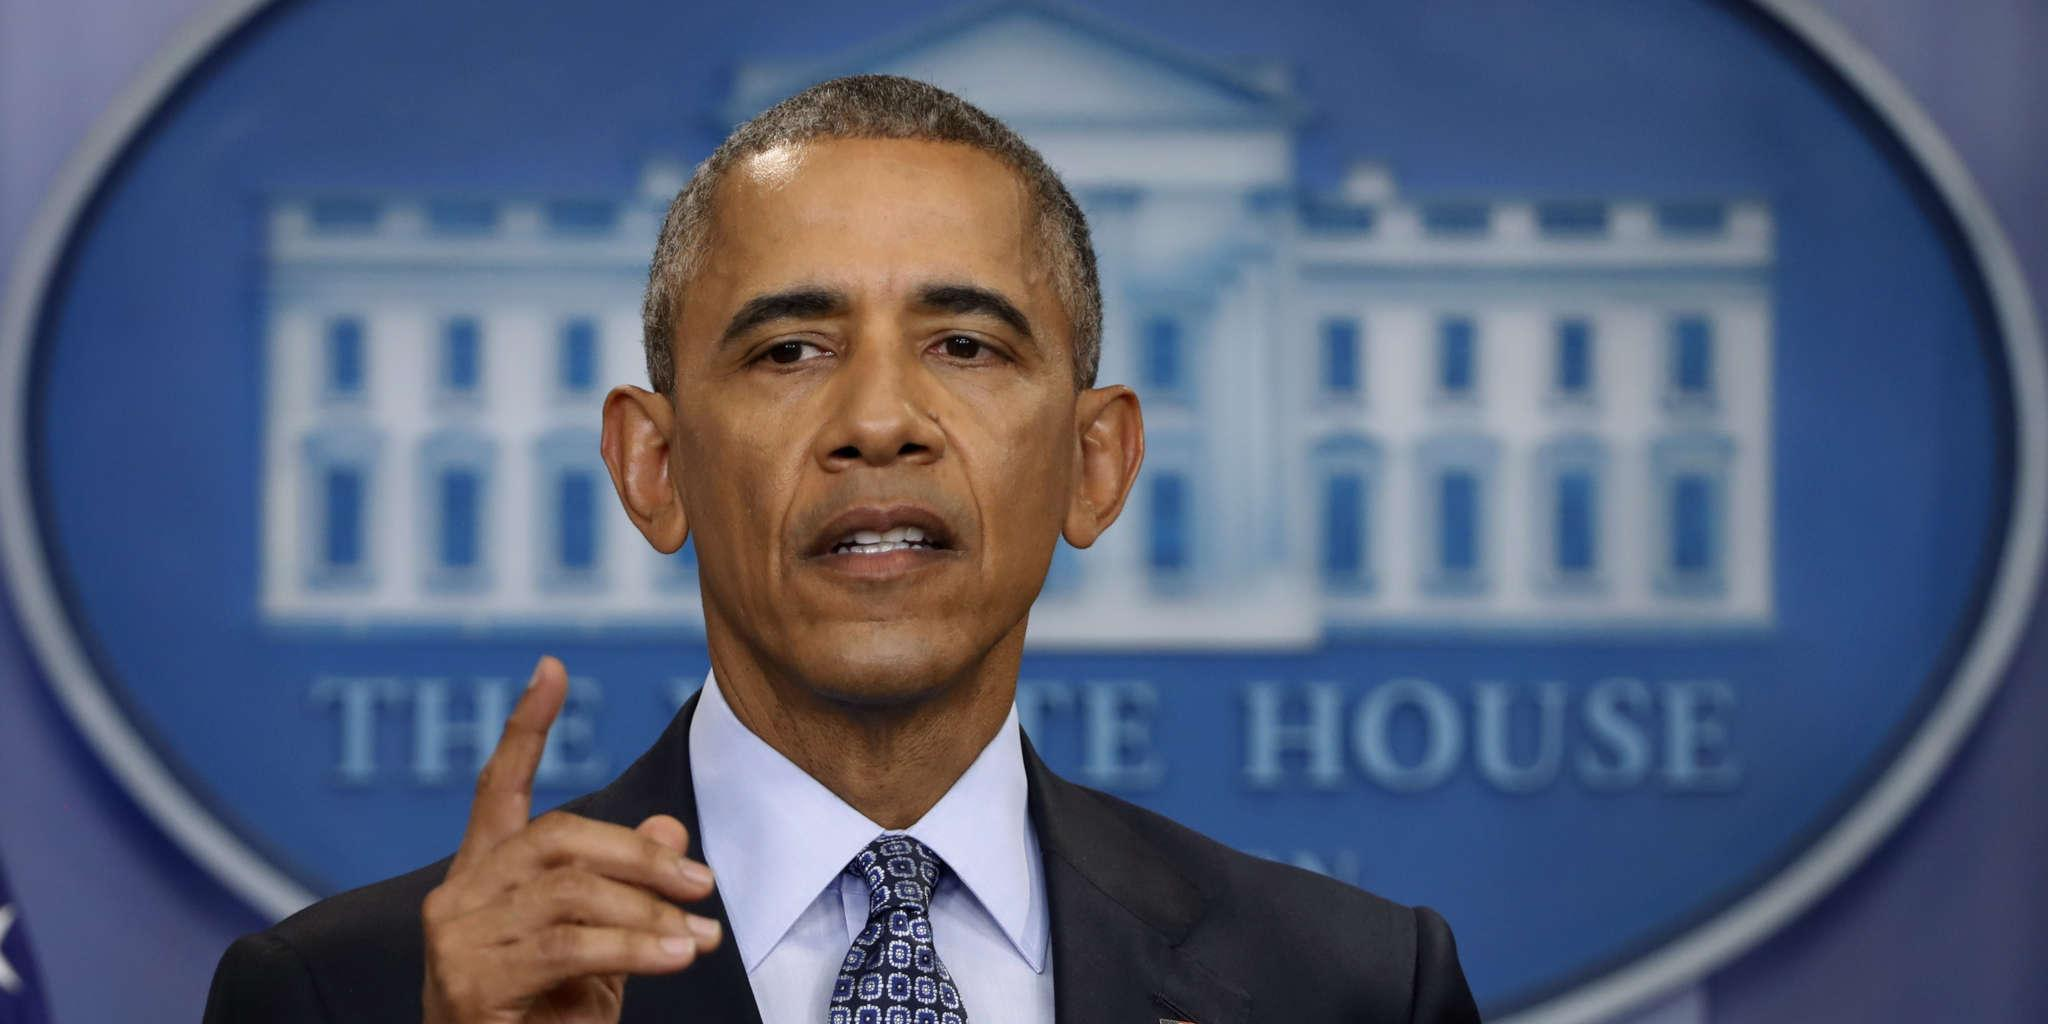 Barack Obama Shares Lengthy Message On The Recent Shootings - Says 'We Must Reject Leaders That Feed Hatred'